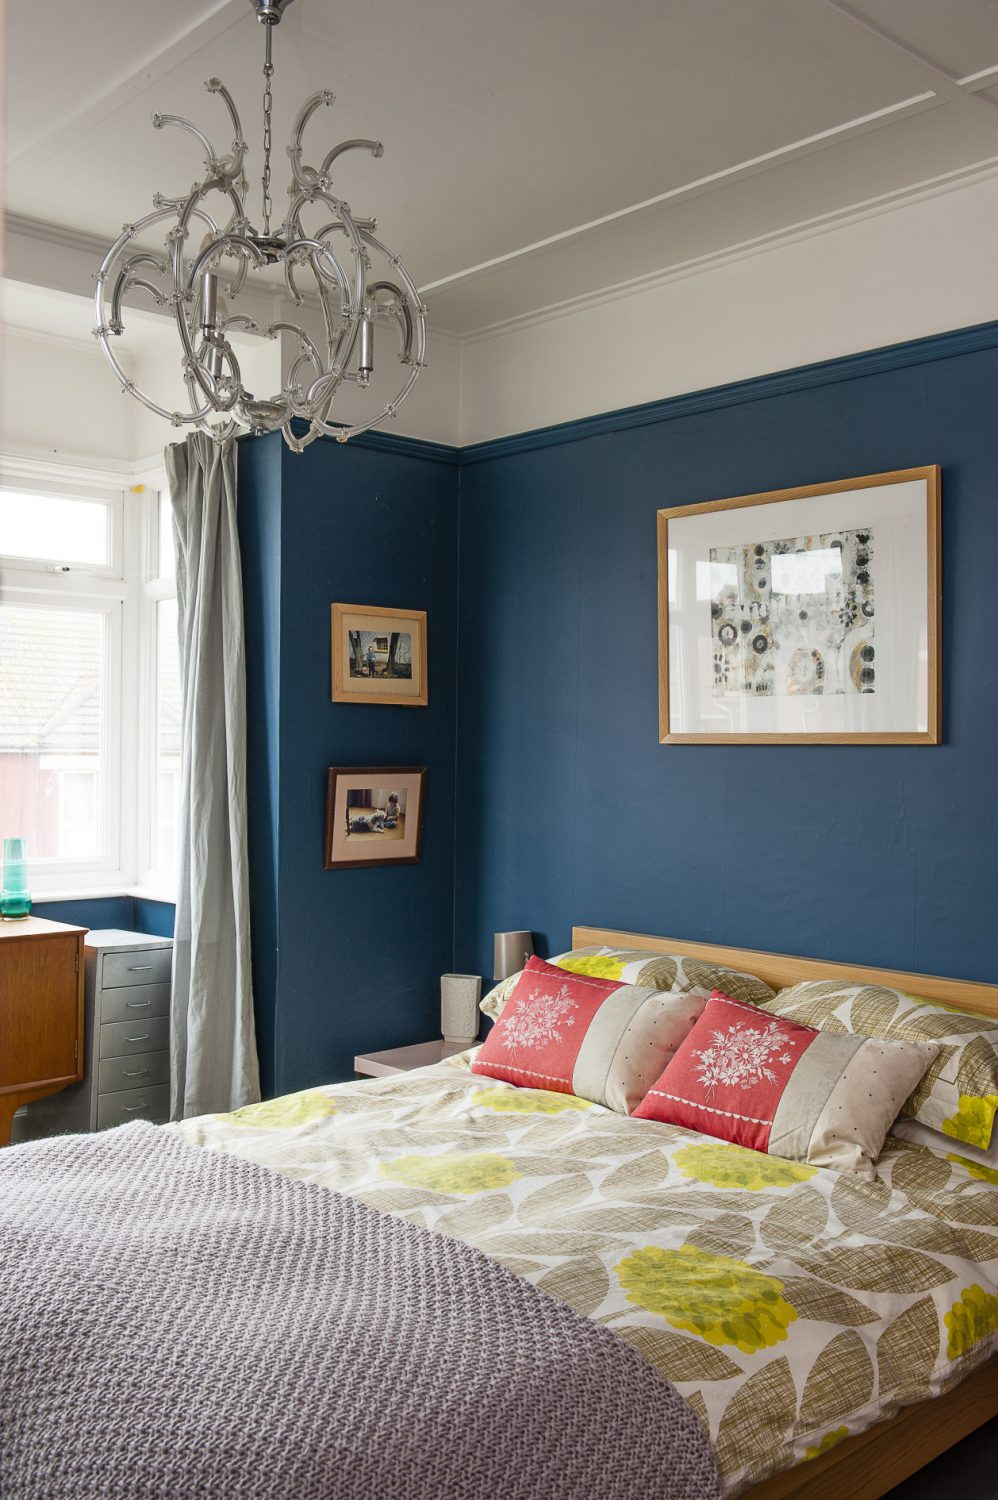 Anna's bedroom is flooded with light which has allowed her to opt for rich, dark walls without compromising a bright and airy space